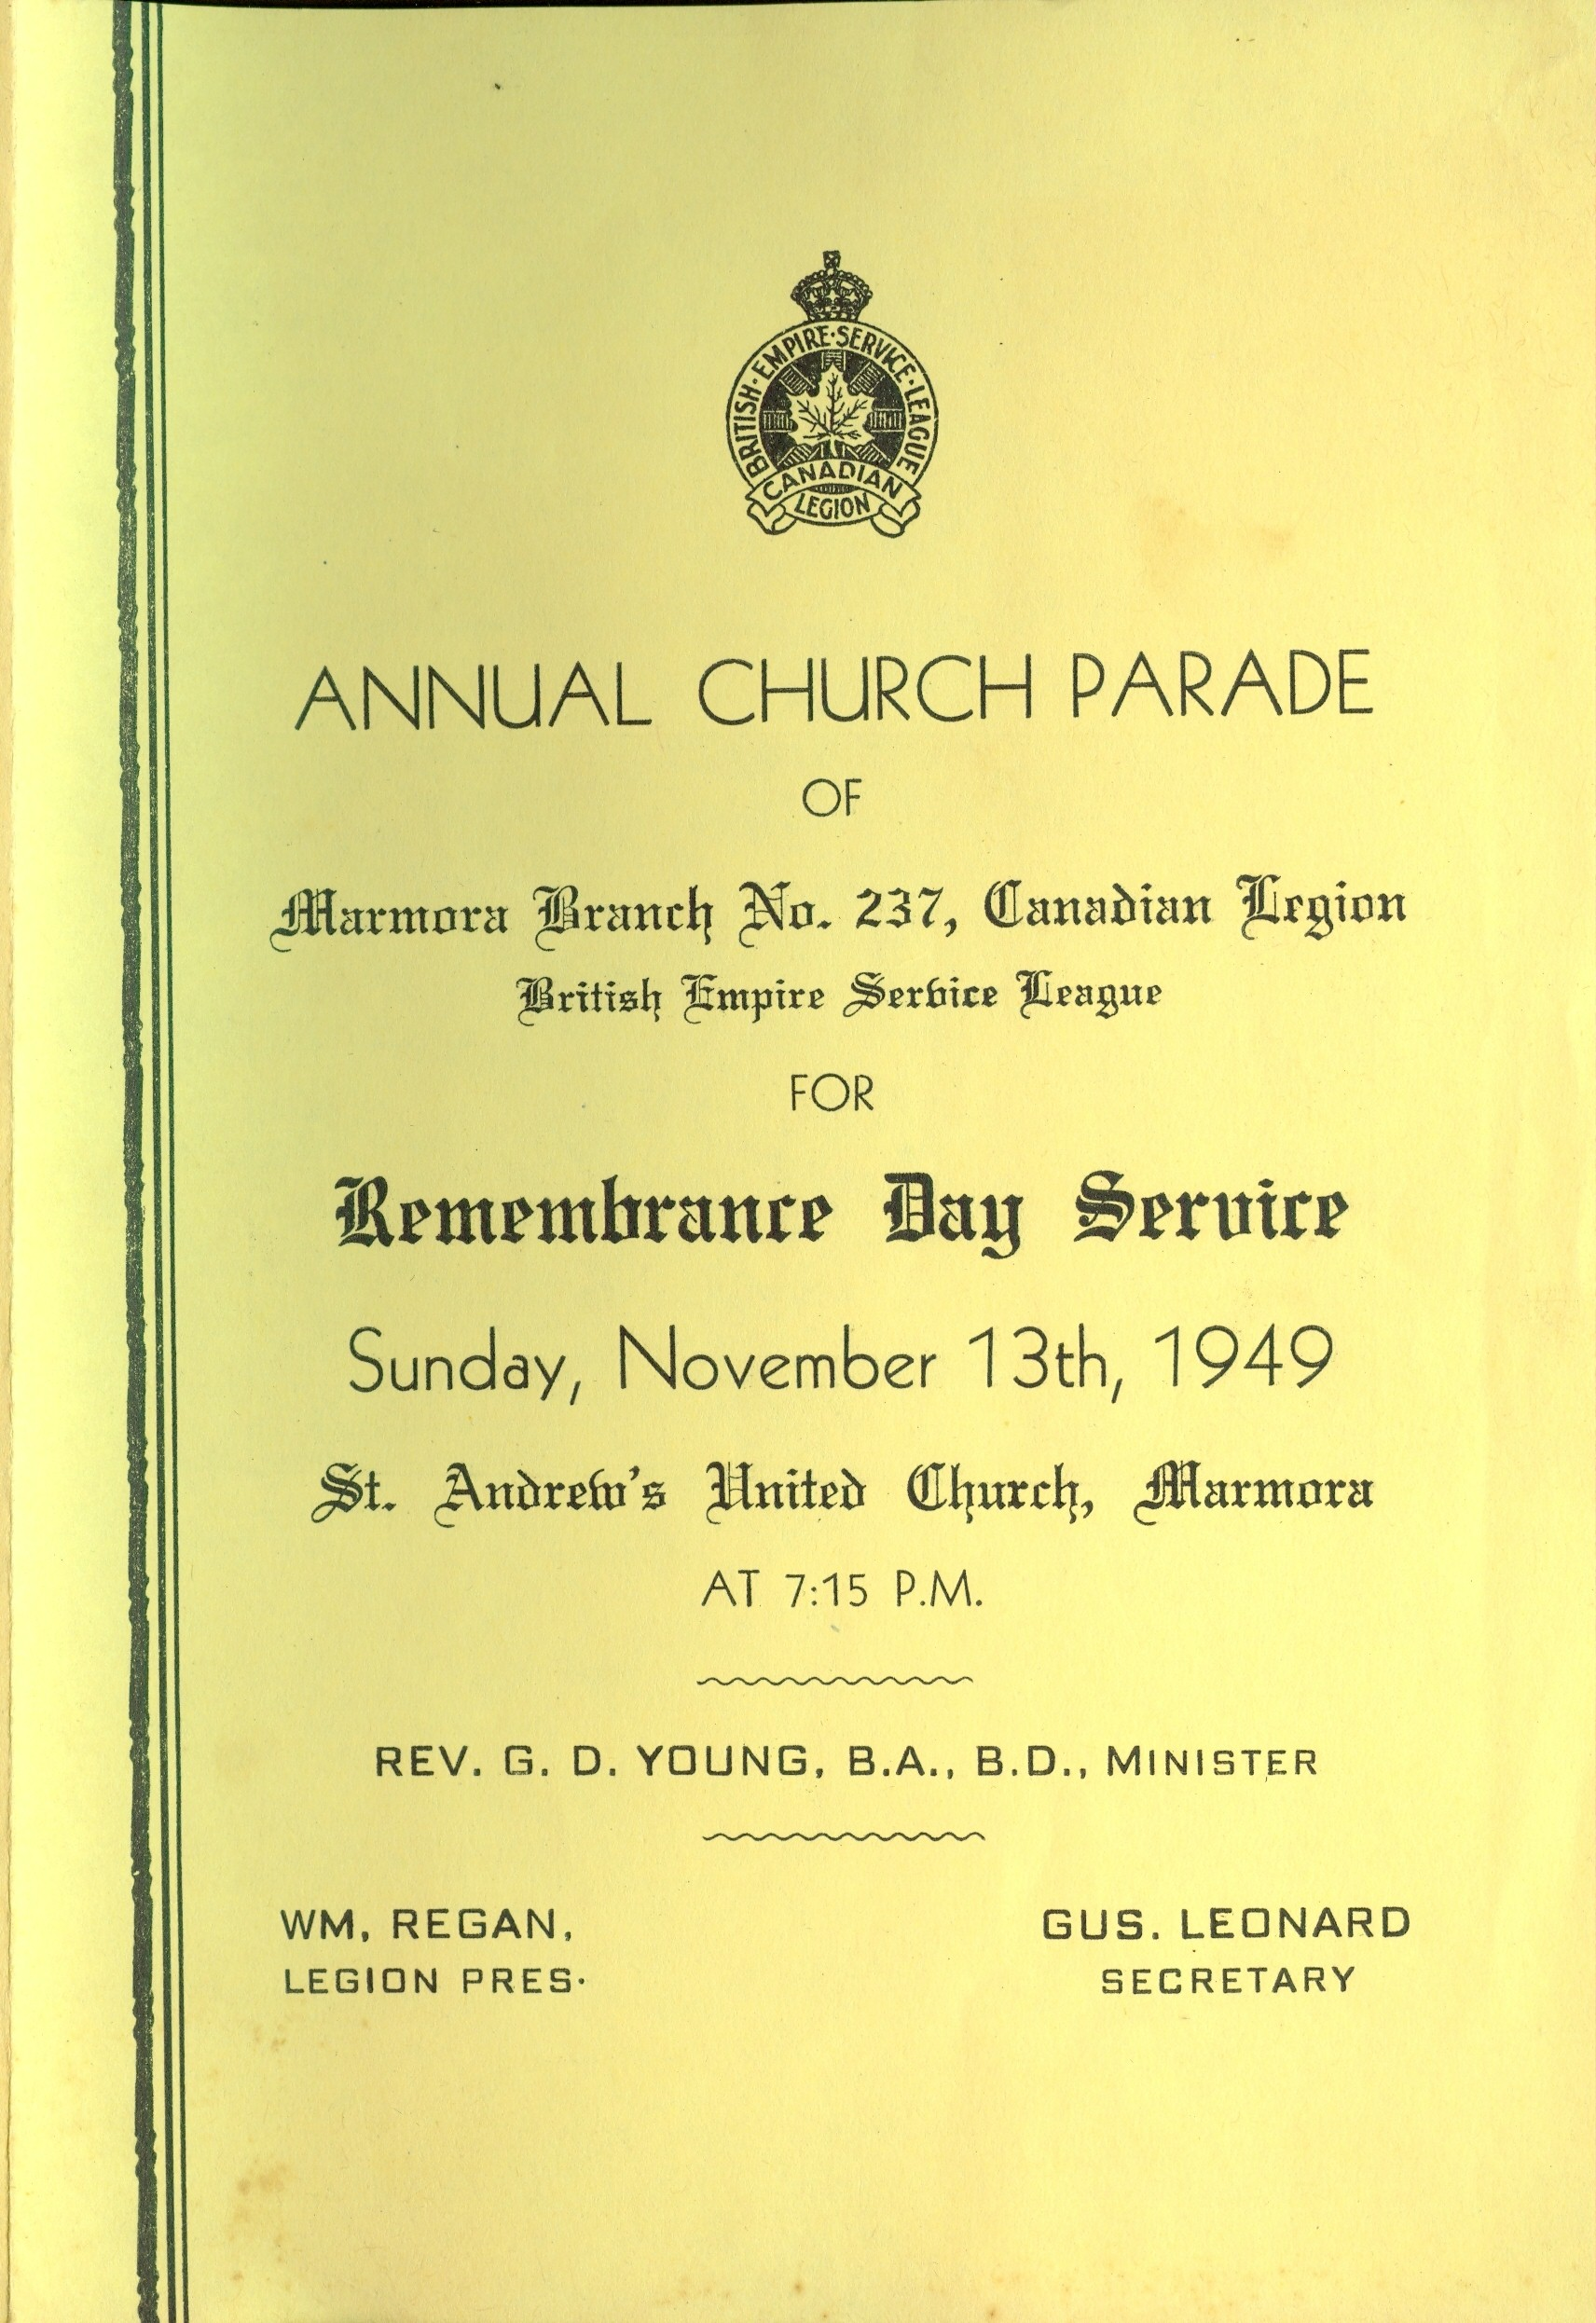 Annual Church Parade Remembrance Day Service program 1949 pg 1, St. Andrew's United Church.jpg